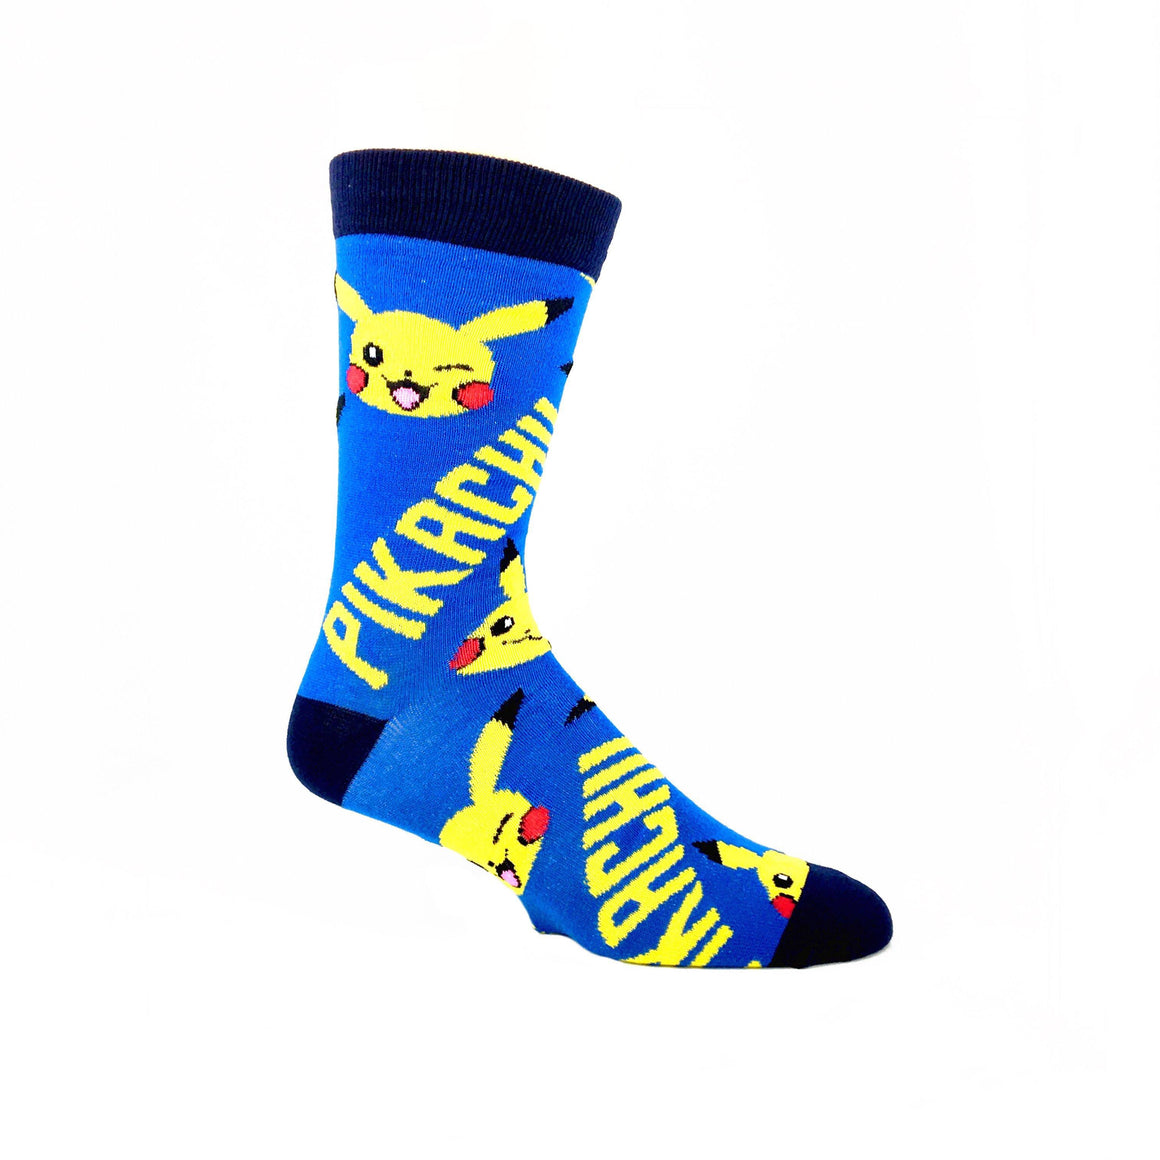 Socks - Pokémon Pikachu All Over Socks